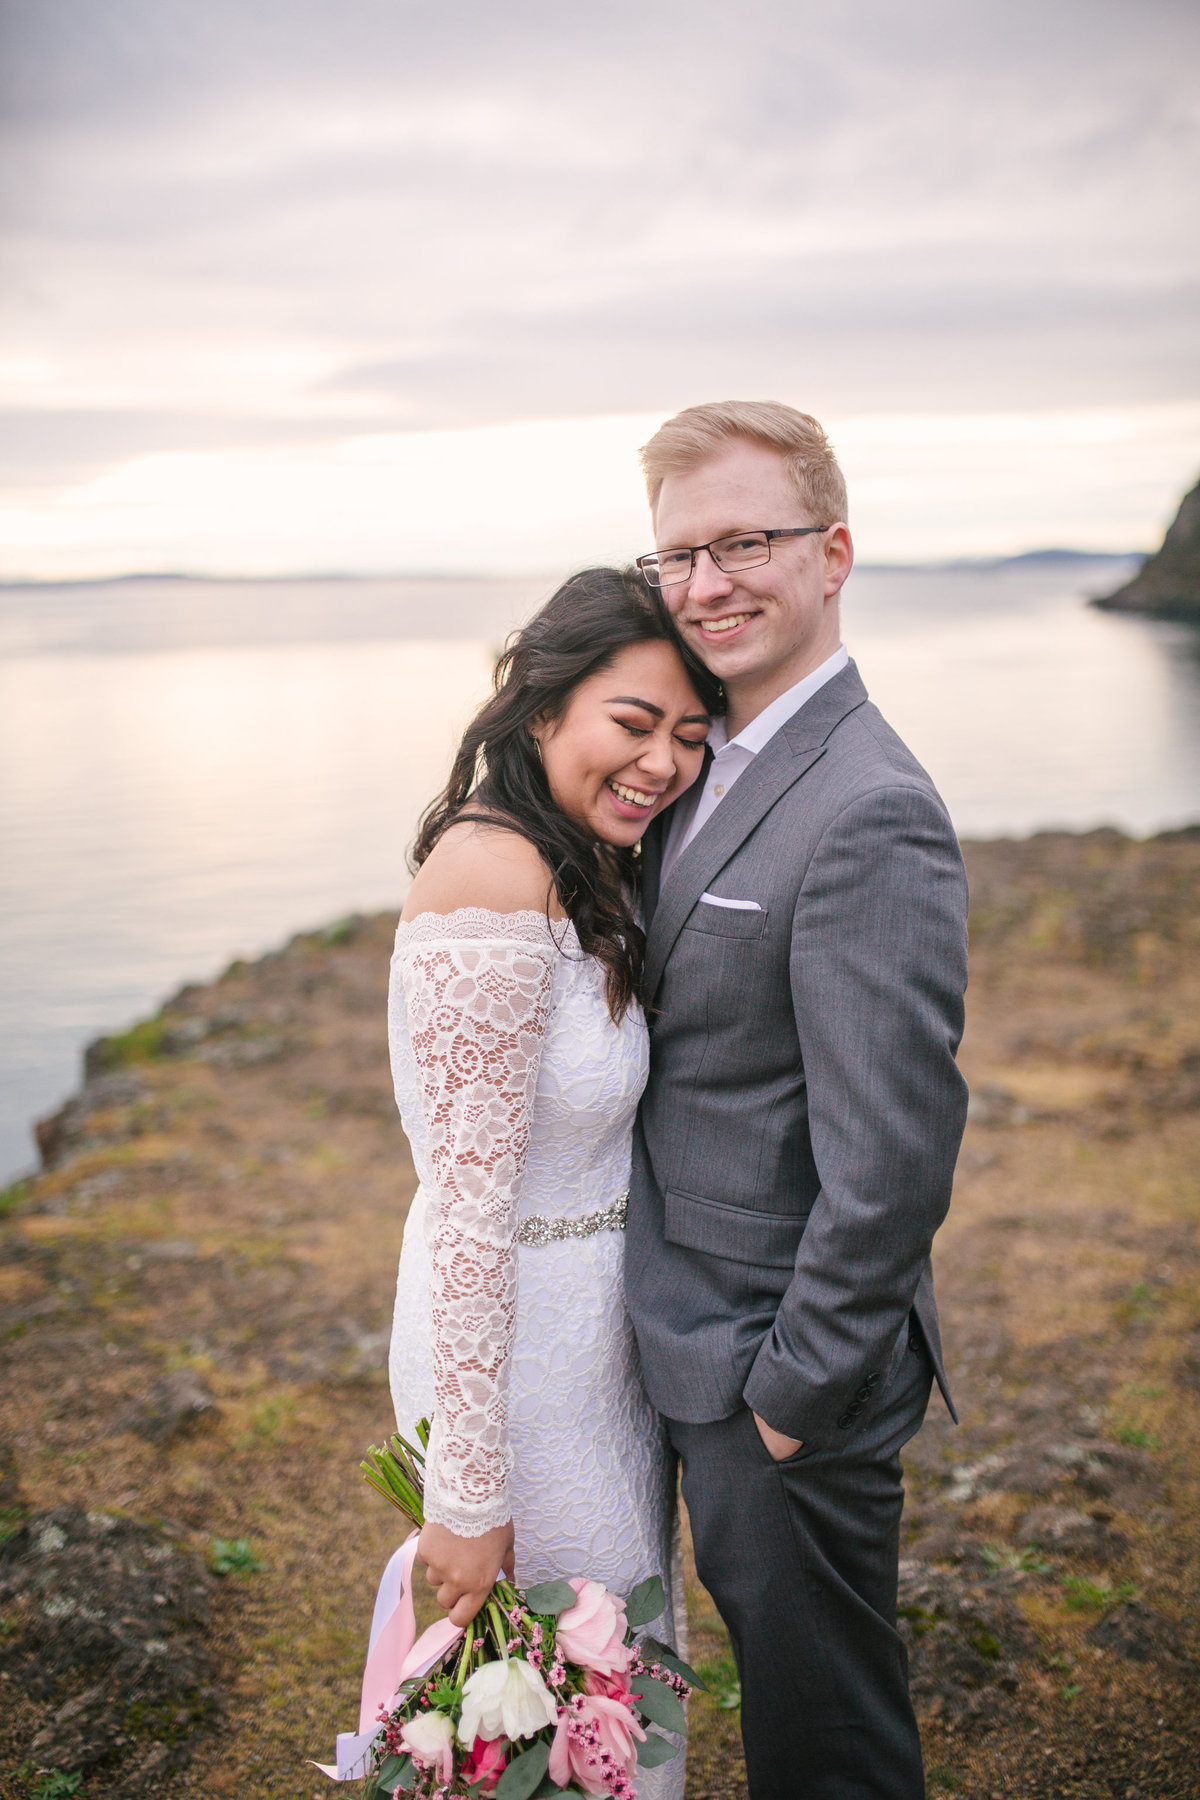 Rosario-Beach-elopement-photos-Anacortes-Washington-086